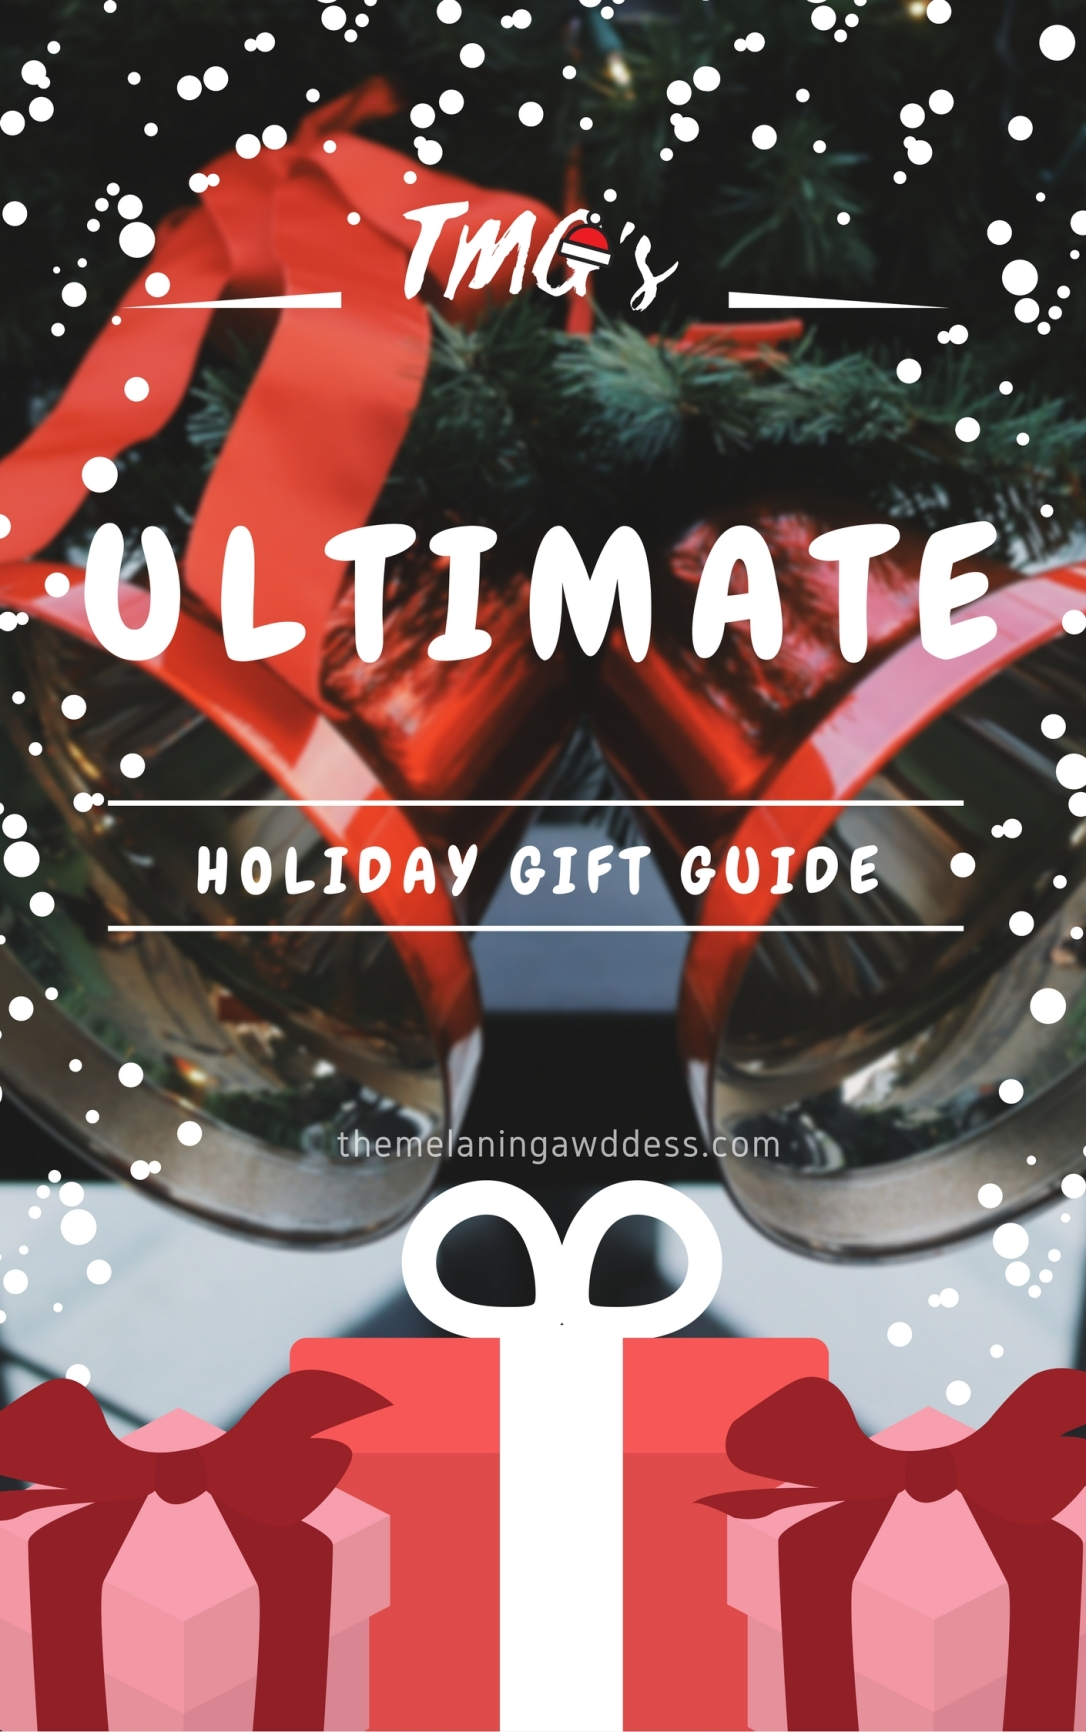 TMG's_ Ultimate Holiday Gift Guide